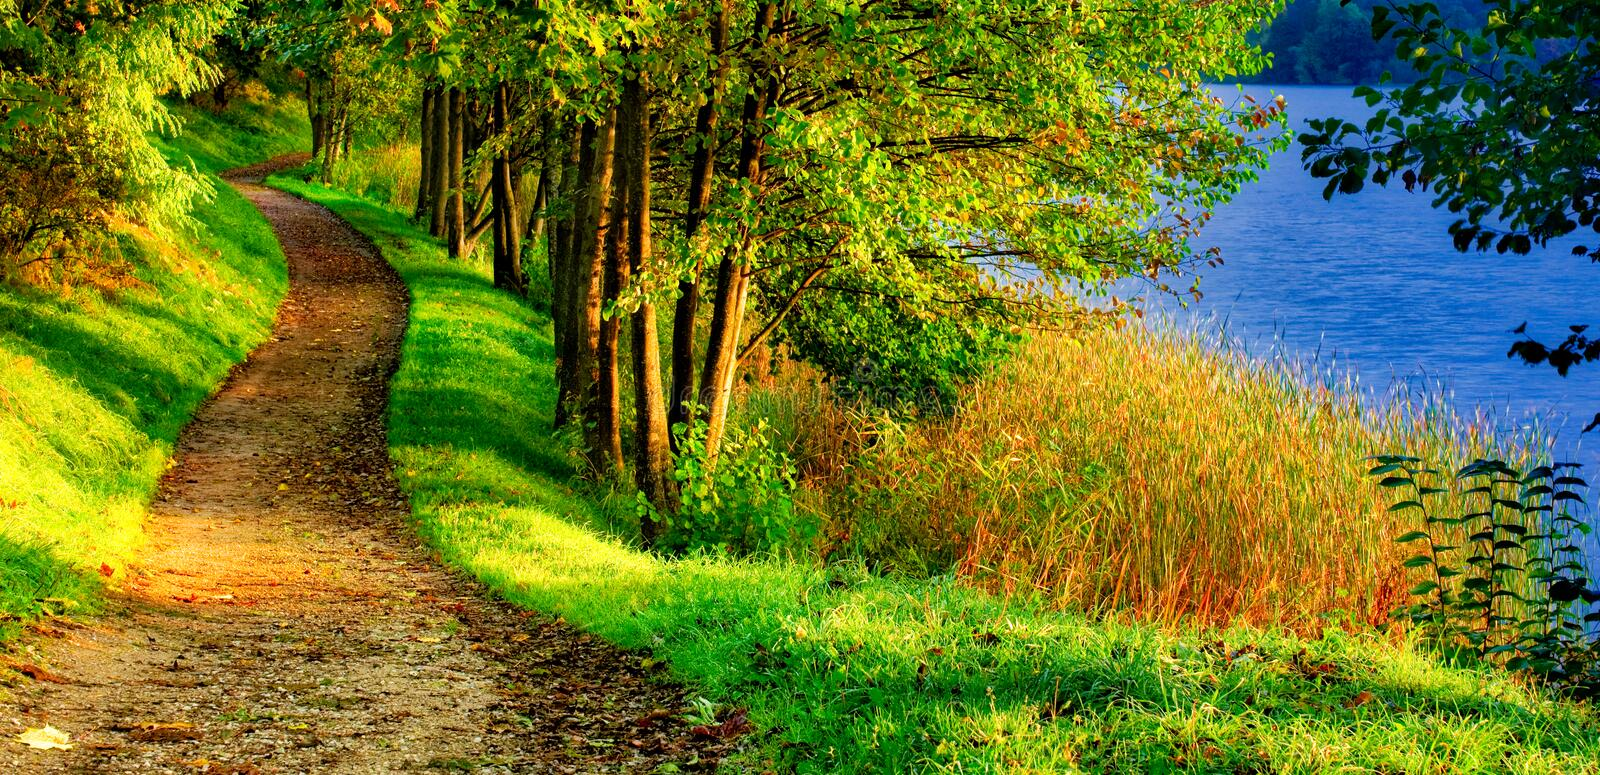 Scenic nature landscape of path near lake. Forest path tunnel through trees near lake, scenic nature autumn landscape panorama view stock photo